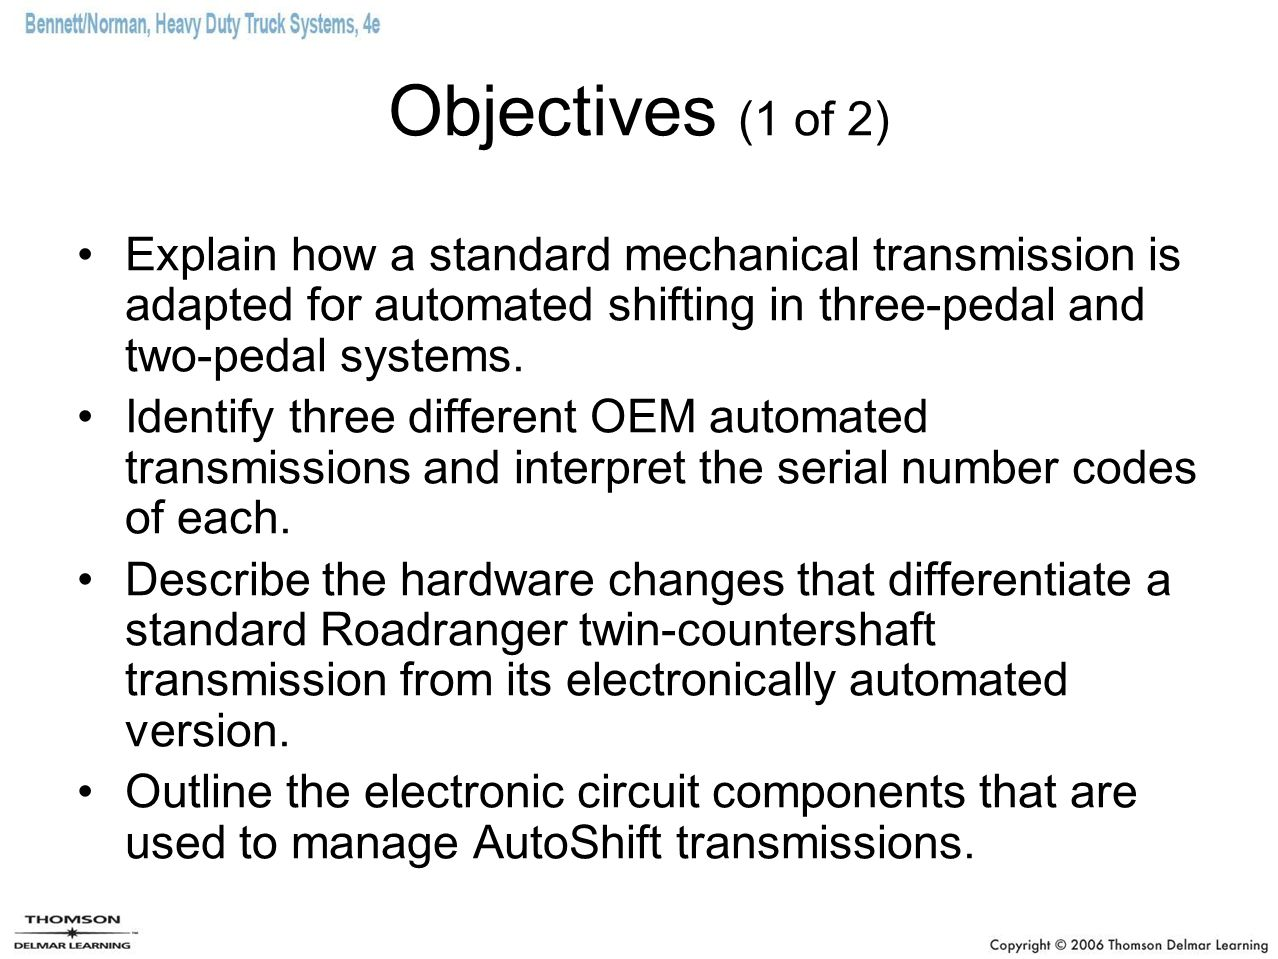 Objectives (1 of 2) Explain how a standard mechanical transmission is adapted for automated shifting in three-pedal and two-pedal systems.